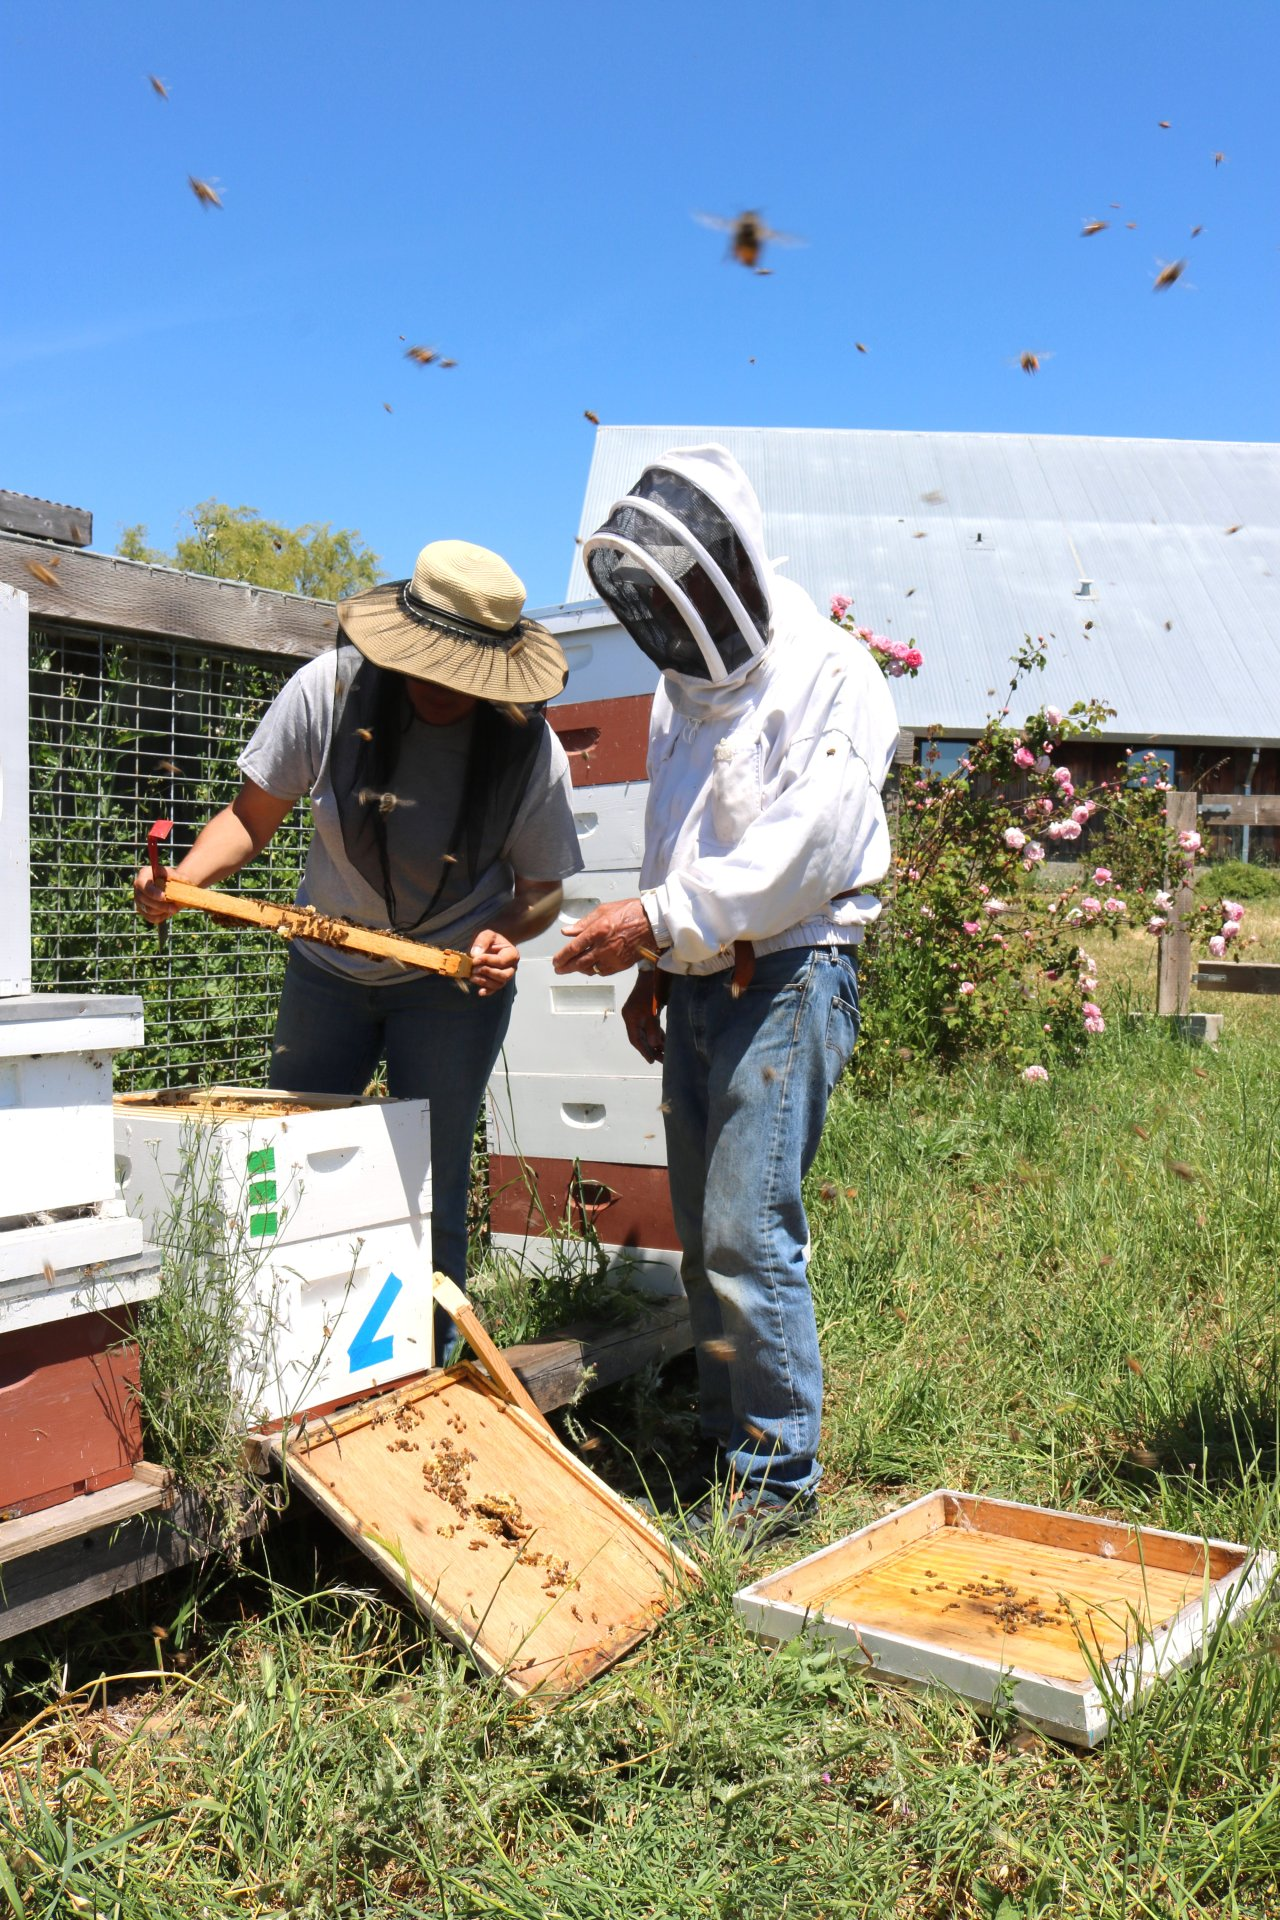 Getting Buzzed at Heidrun Meadery: A Flower to Flute Adventure in Beekeeping